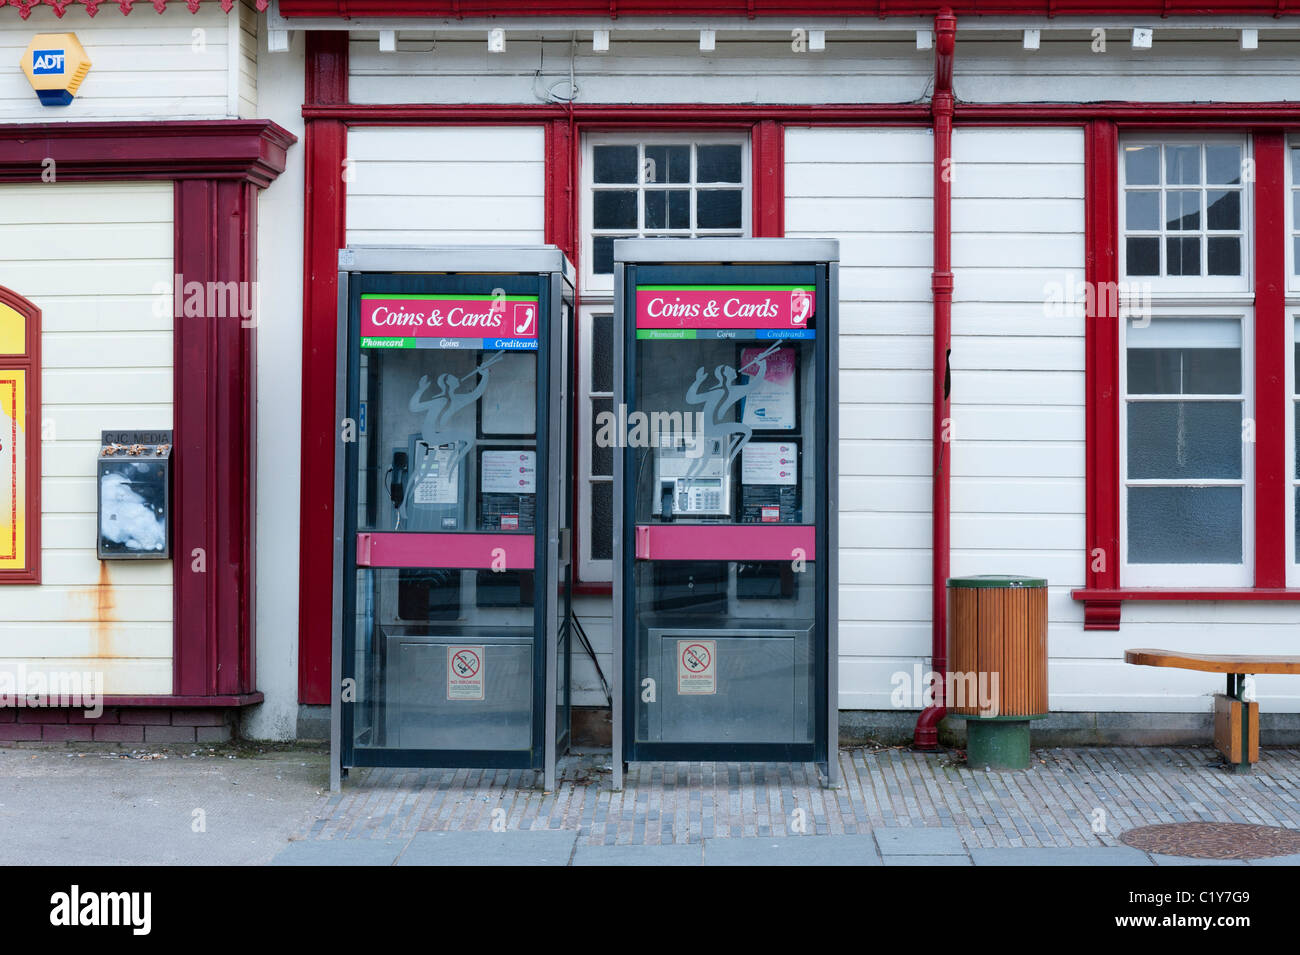 Public call boxes. - Stock Image